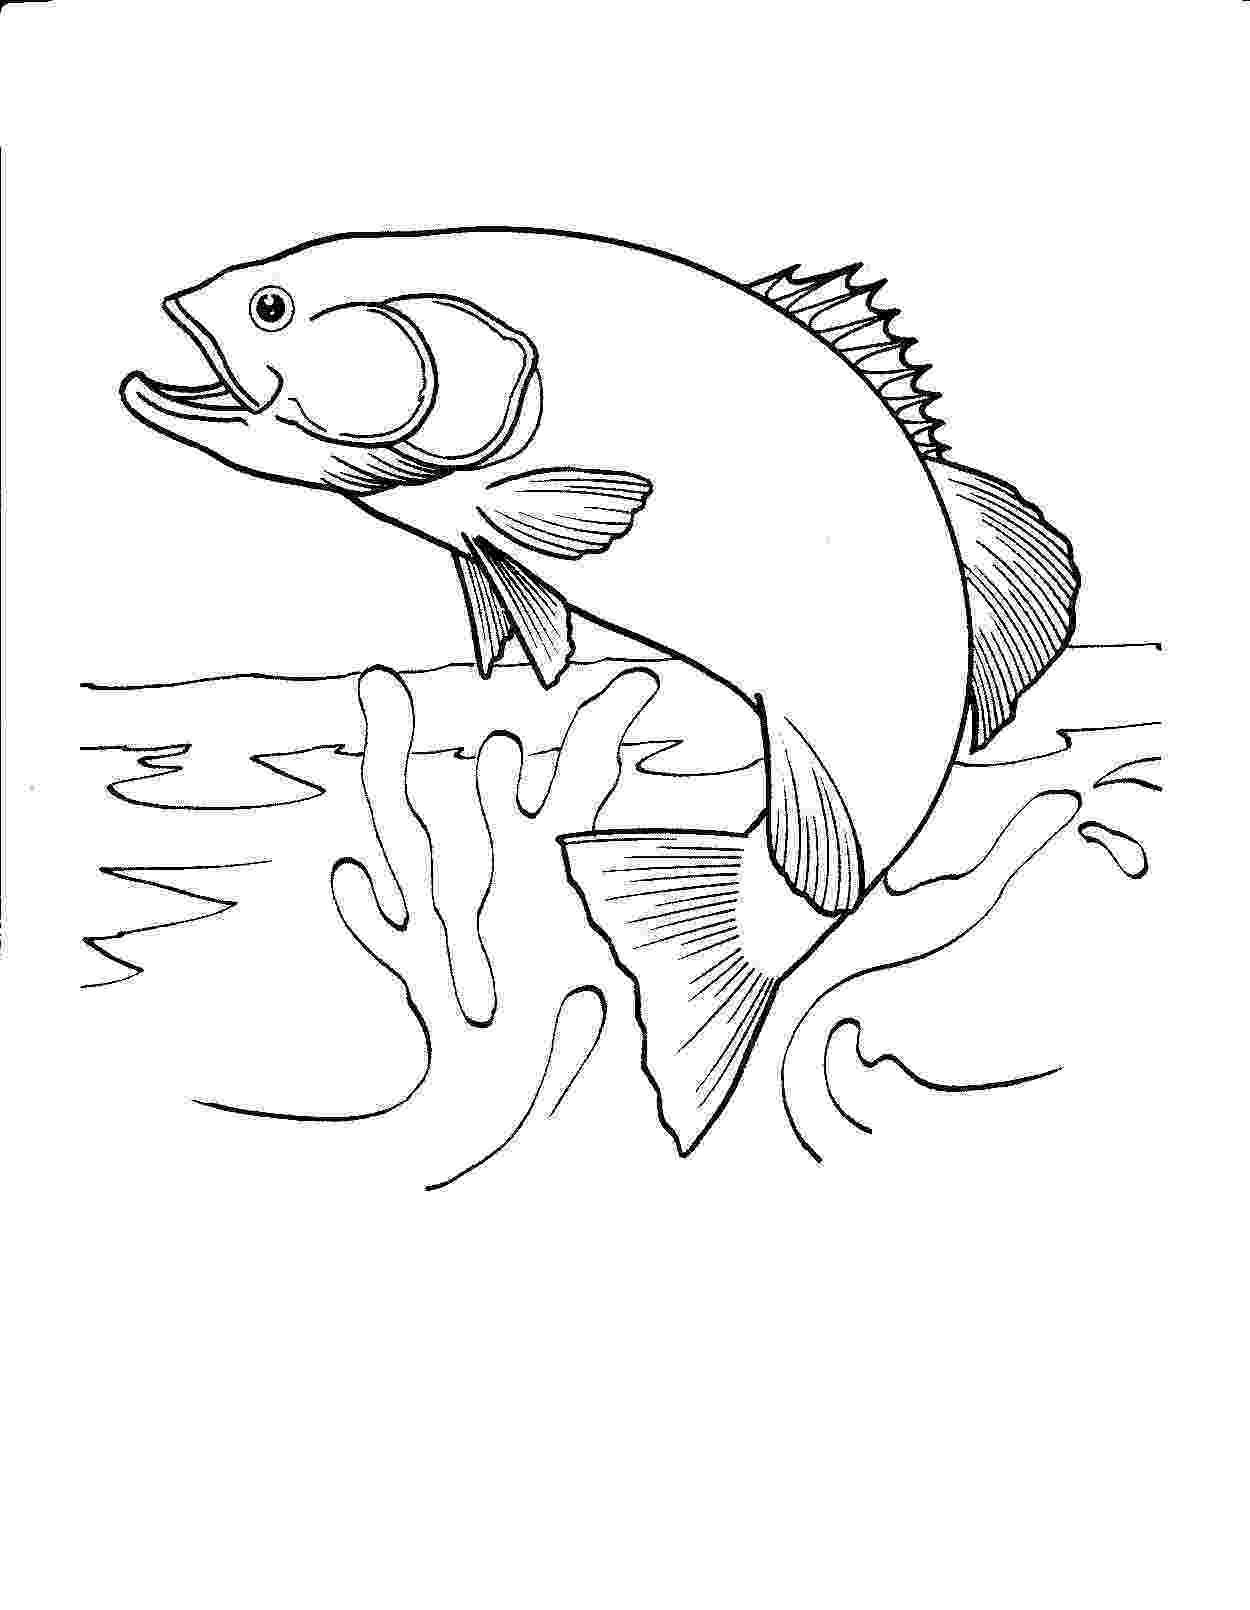 fish colouring book free fish coloring pages for kids gtgt disney coloring pages colouring book fish